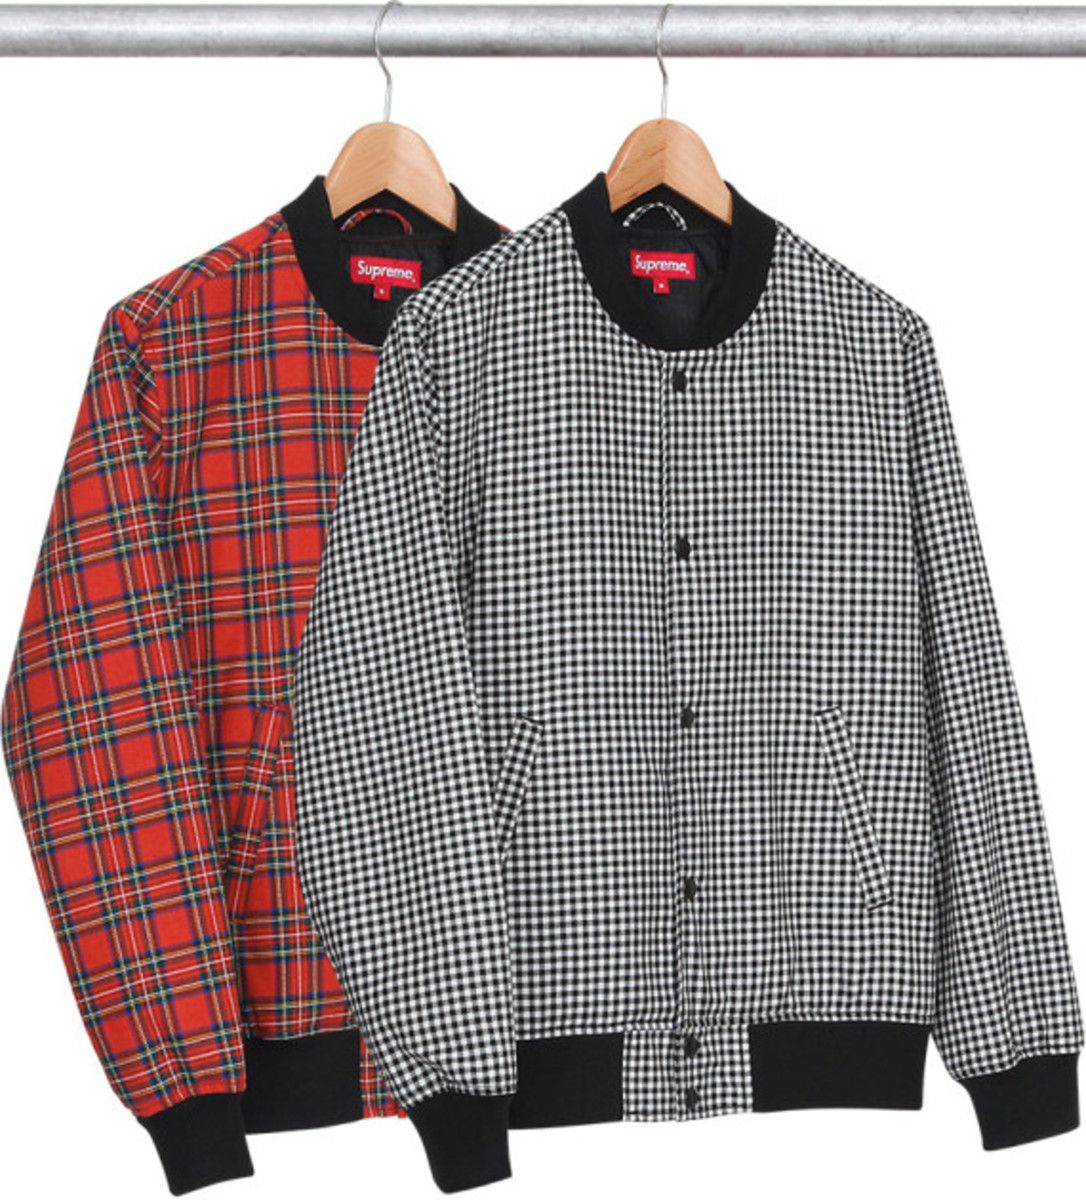 supreme-fall-winter-2013-outerwear-collection-79